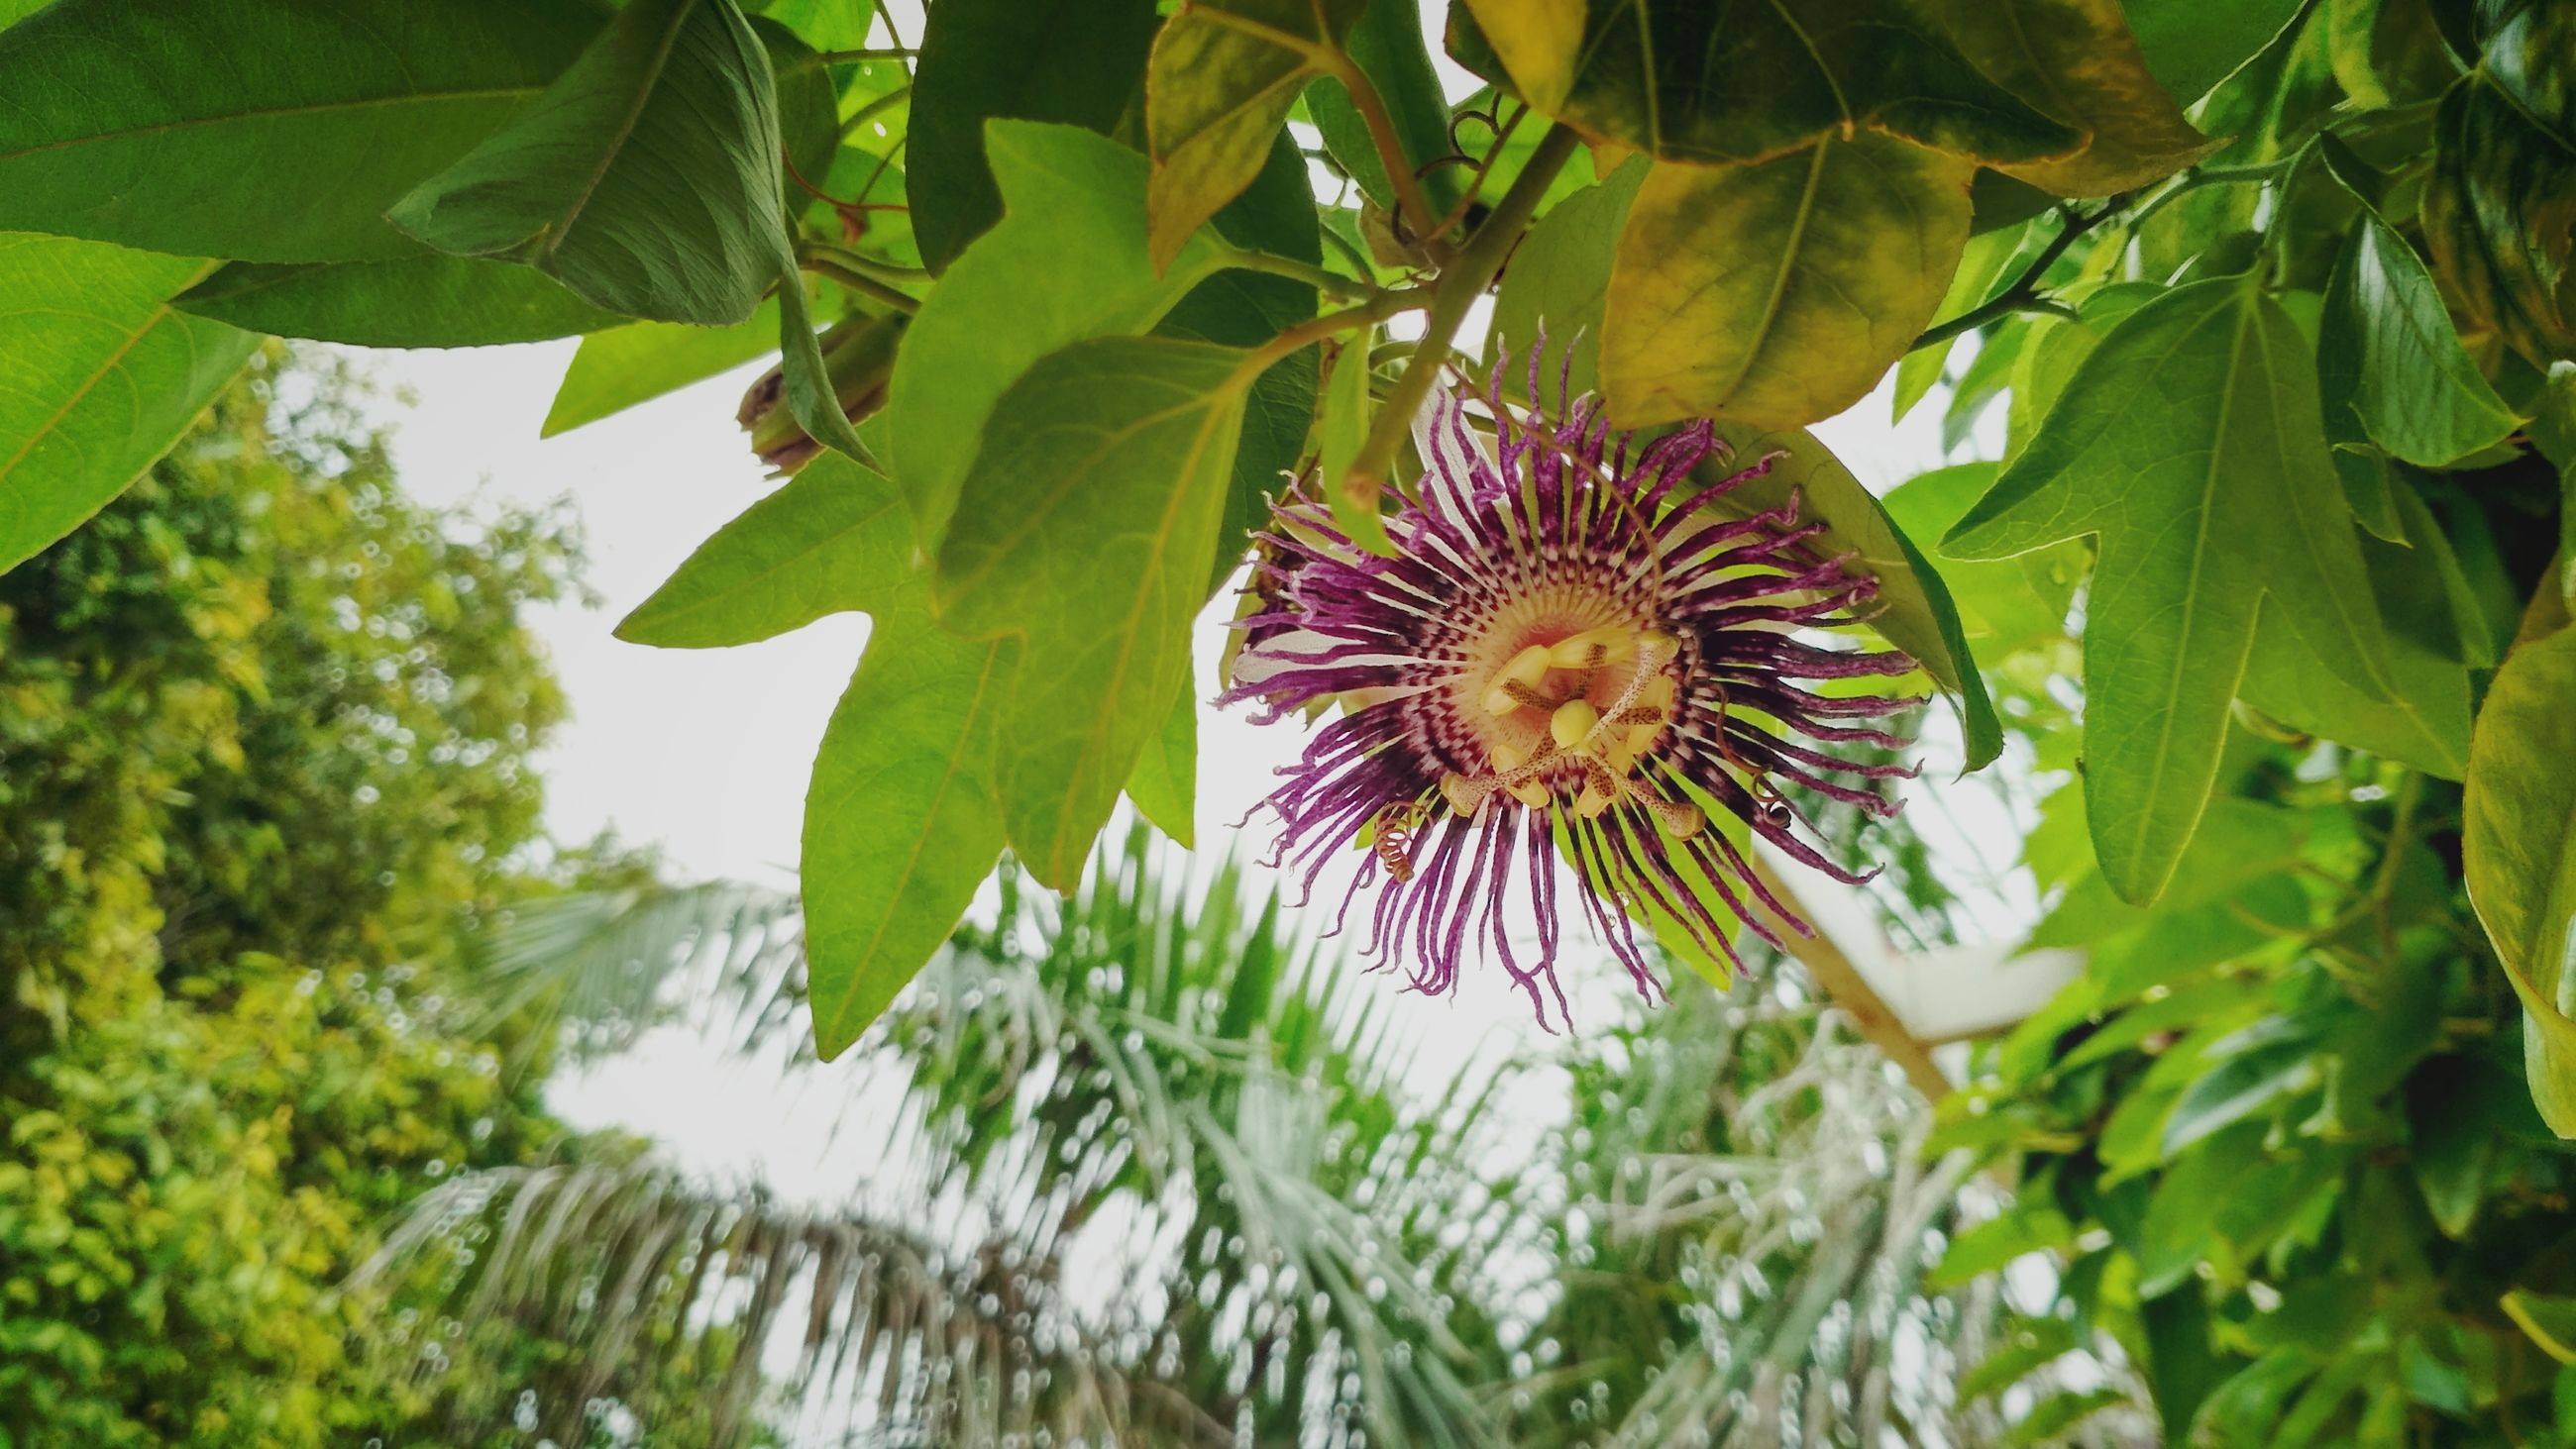 flower, growth, petal, fragility, freshness, beauty in nature, plant, nature, flower head, day, leaf, outdoors, green color, no people, blooming, close-up, park - man made space, passion flower, tree